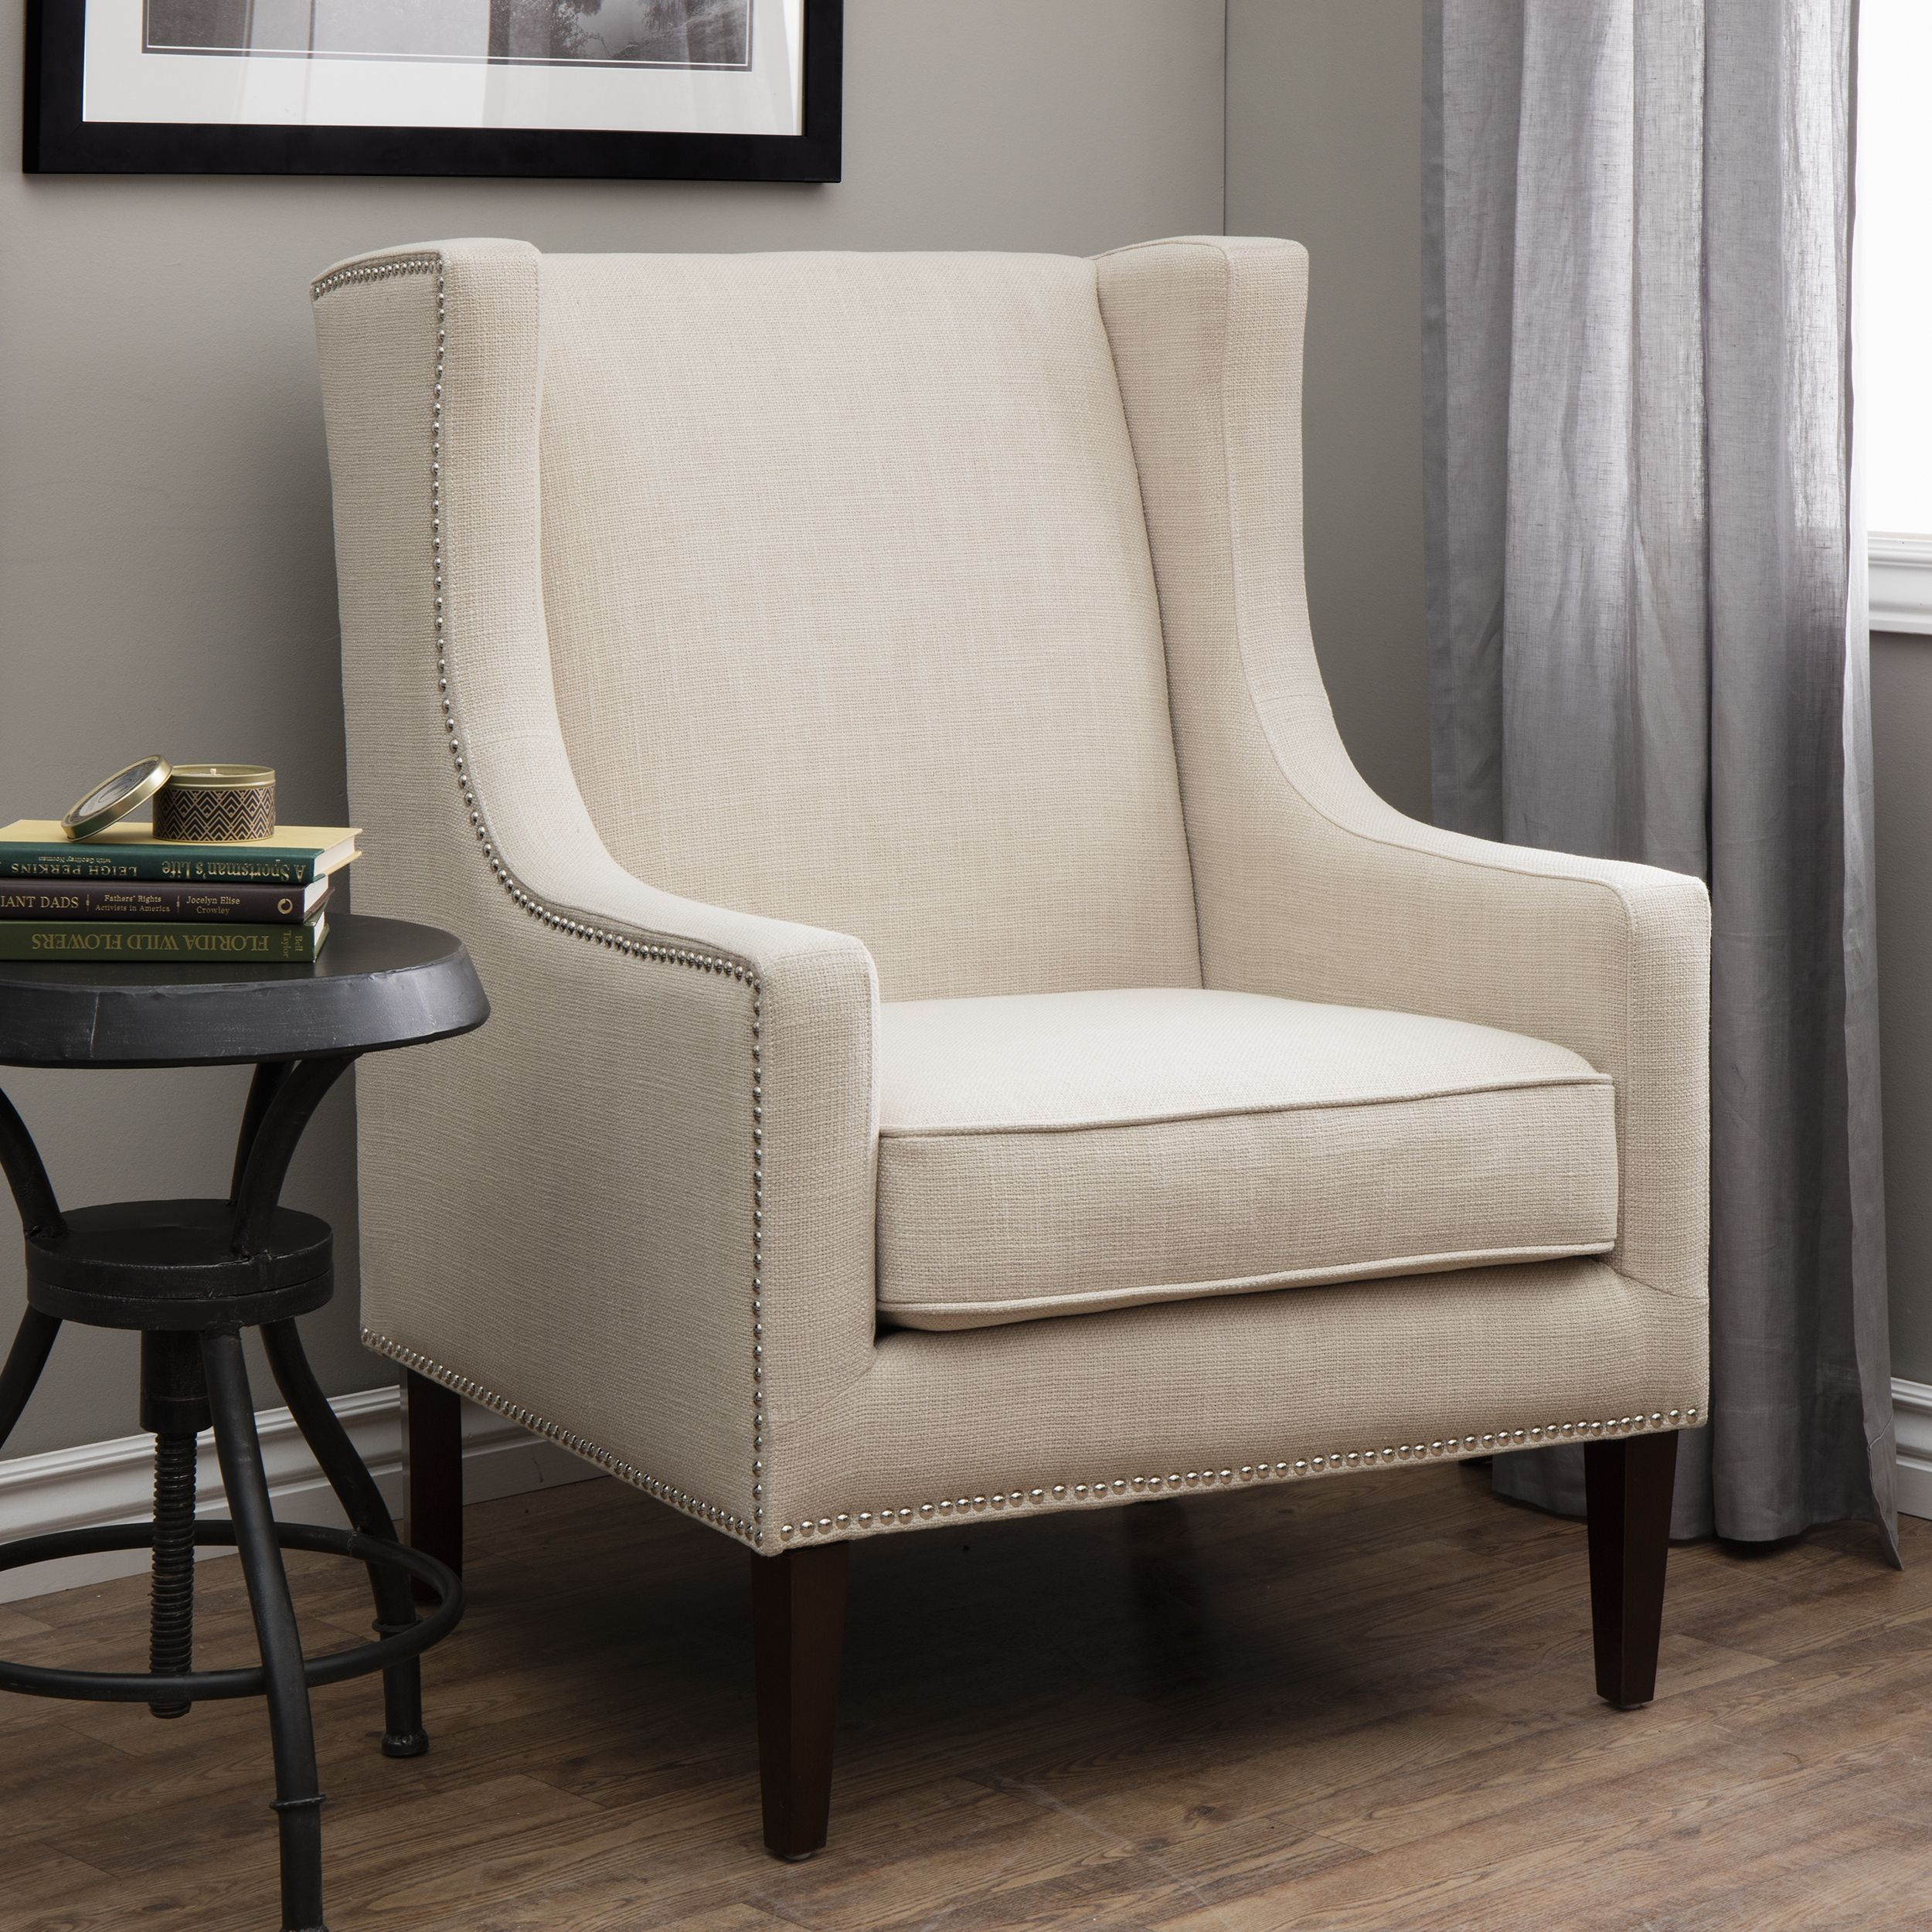 Perfect Finish Upholstery Add A Modern Touch To Your Home Decor With This Stylish